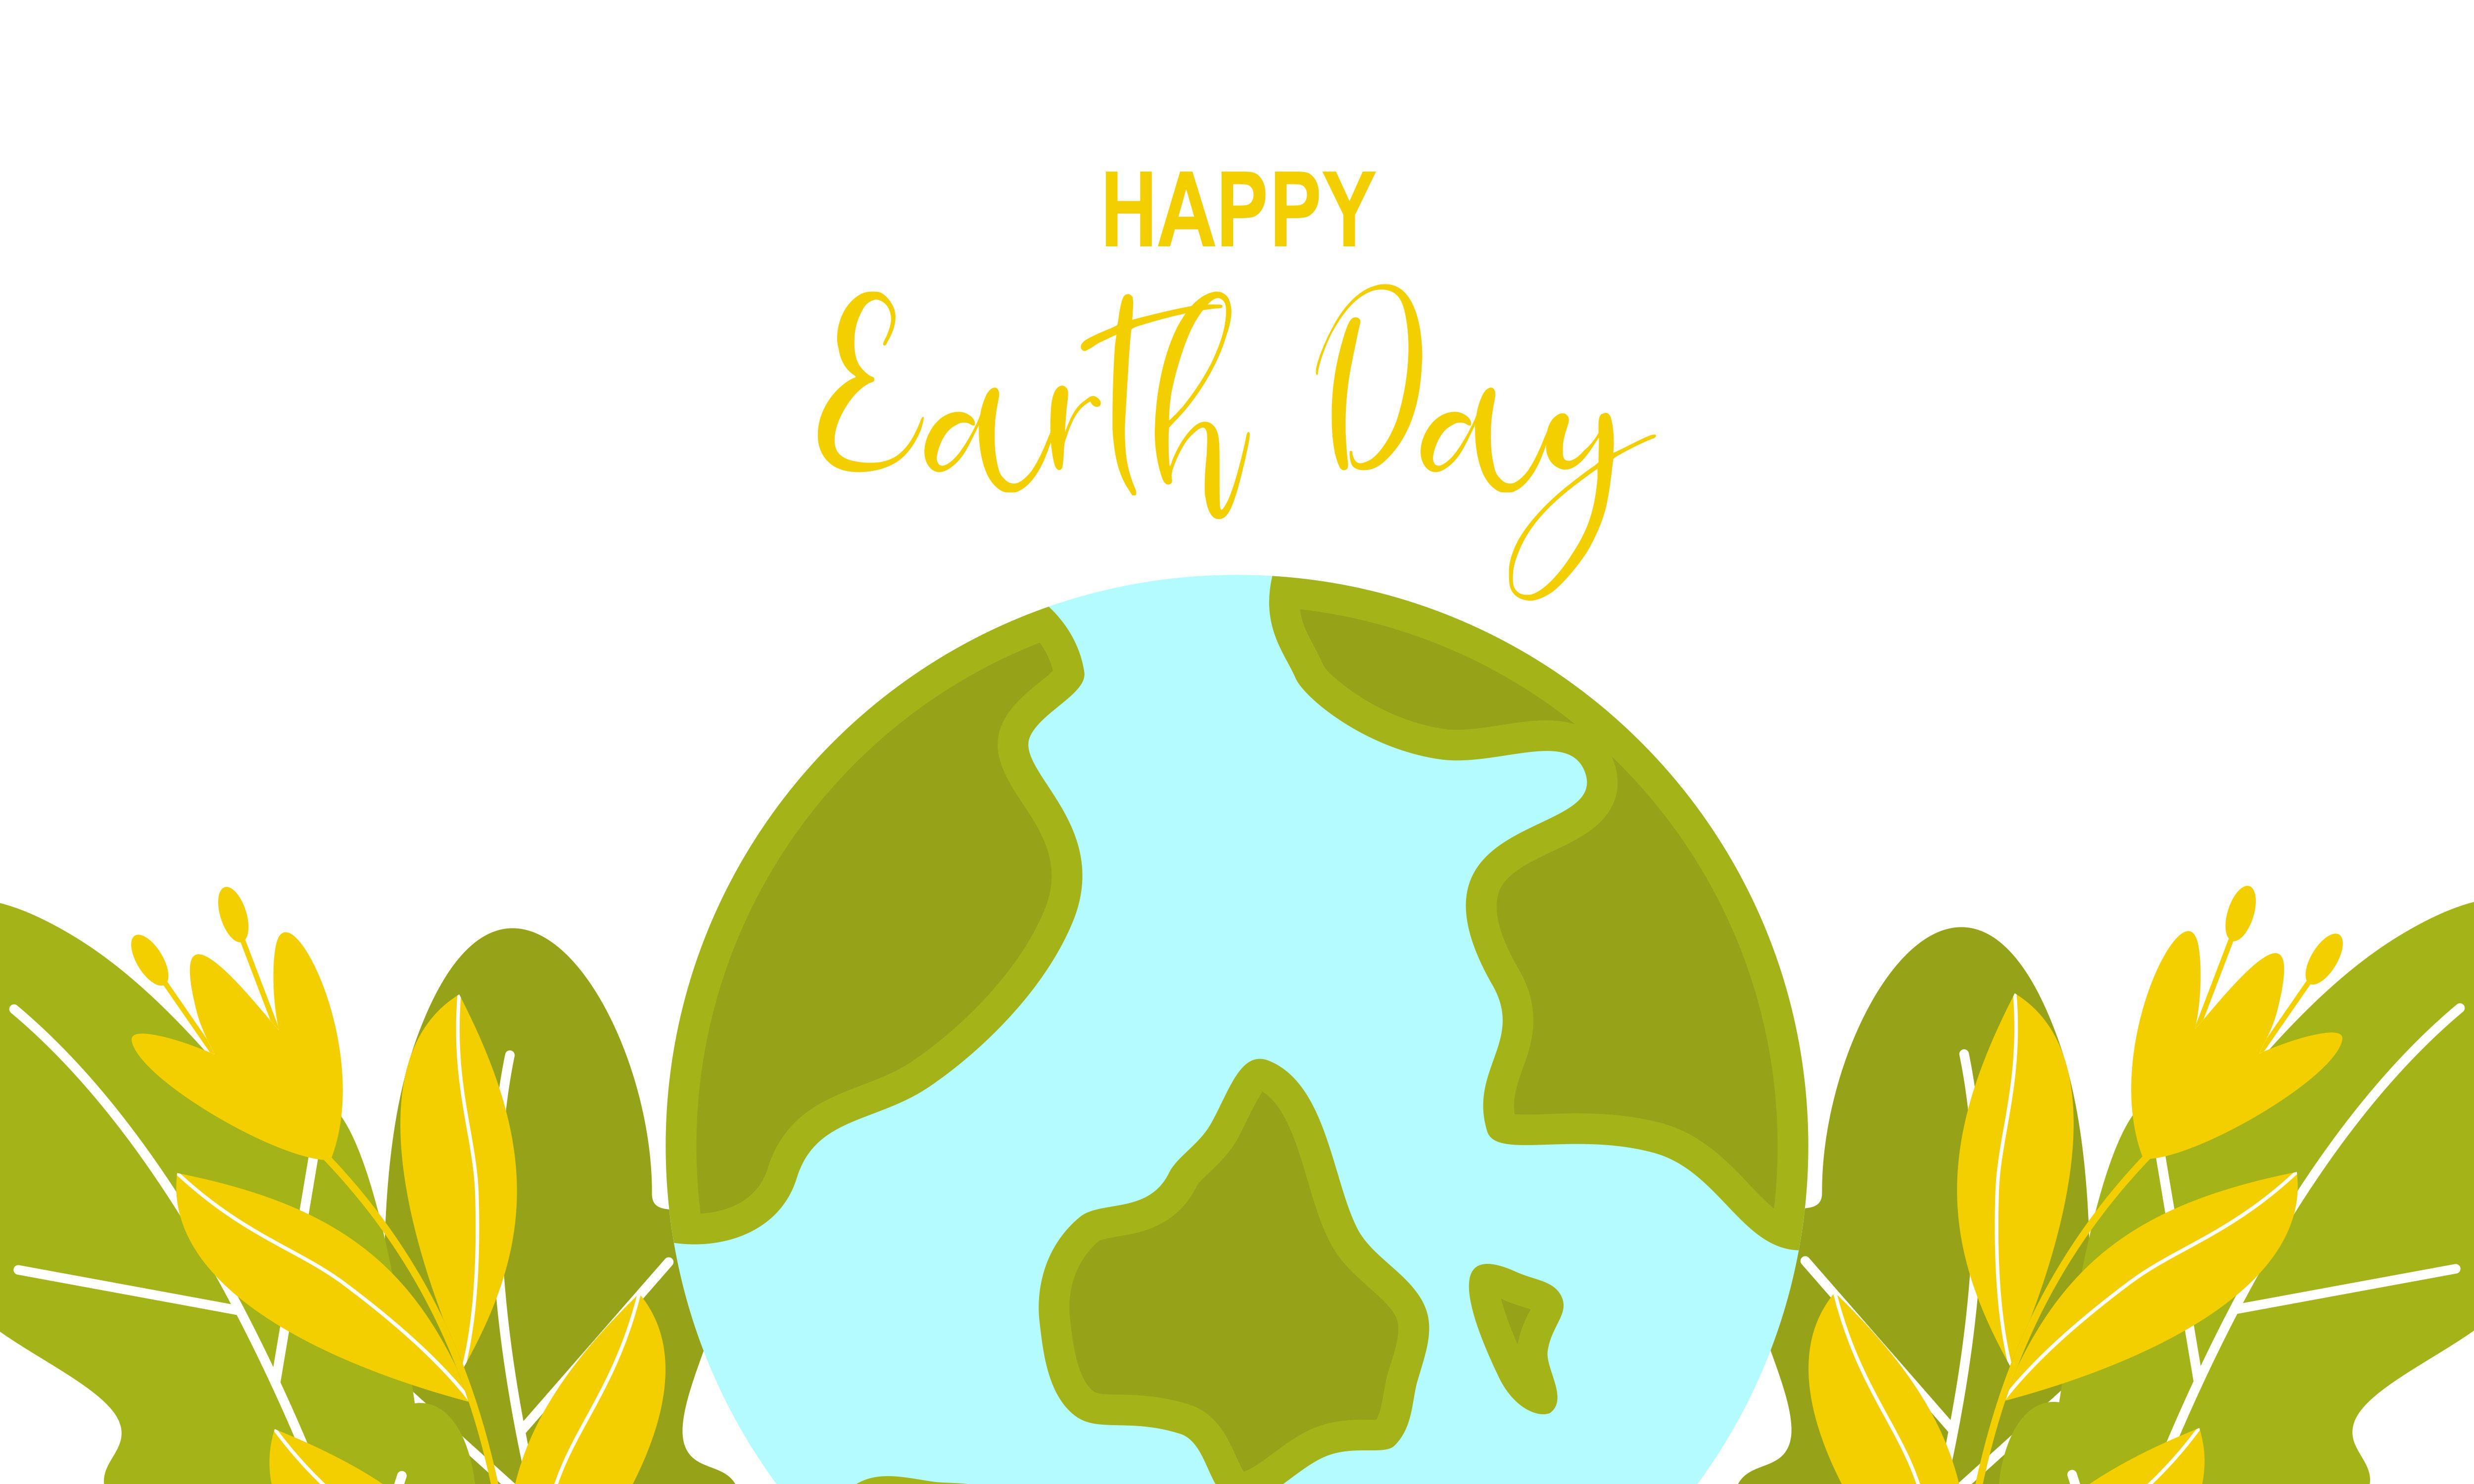 Download Free Happy International Earth Day Background Graphic By Deemka for Cricut Explore, Silhouette and other cutting machines.